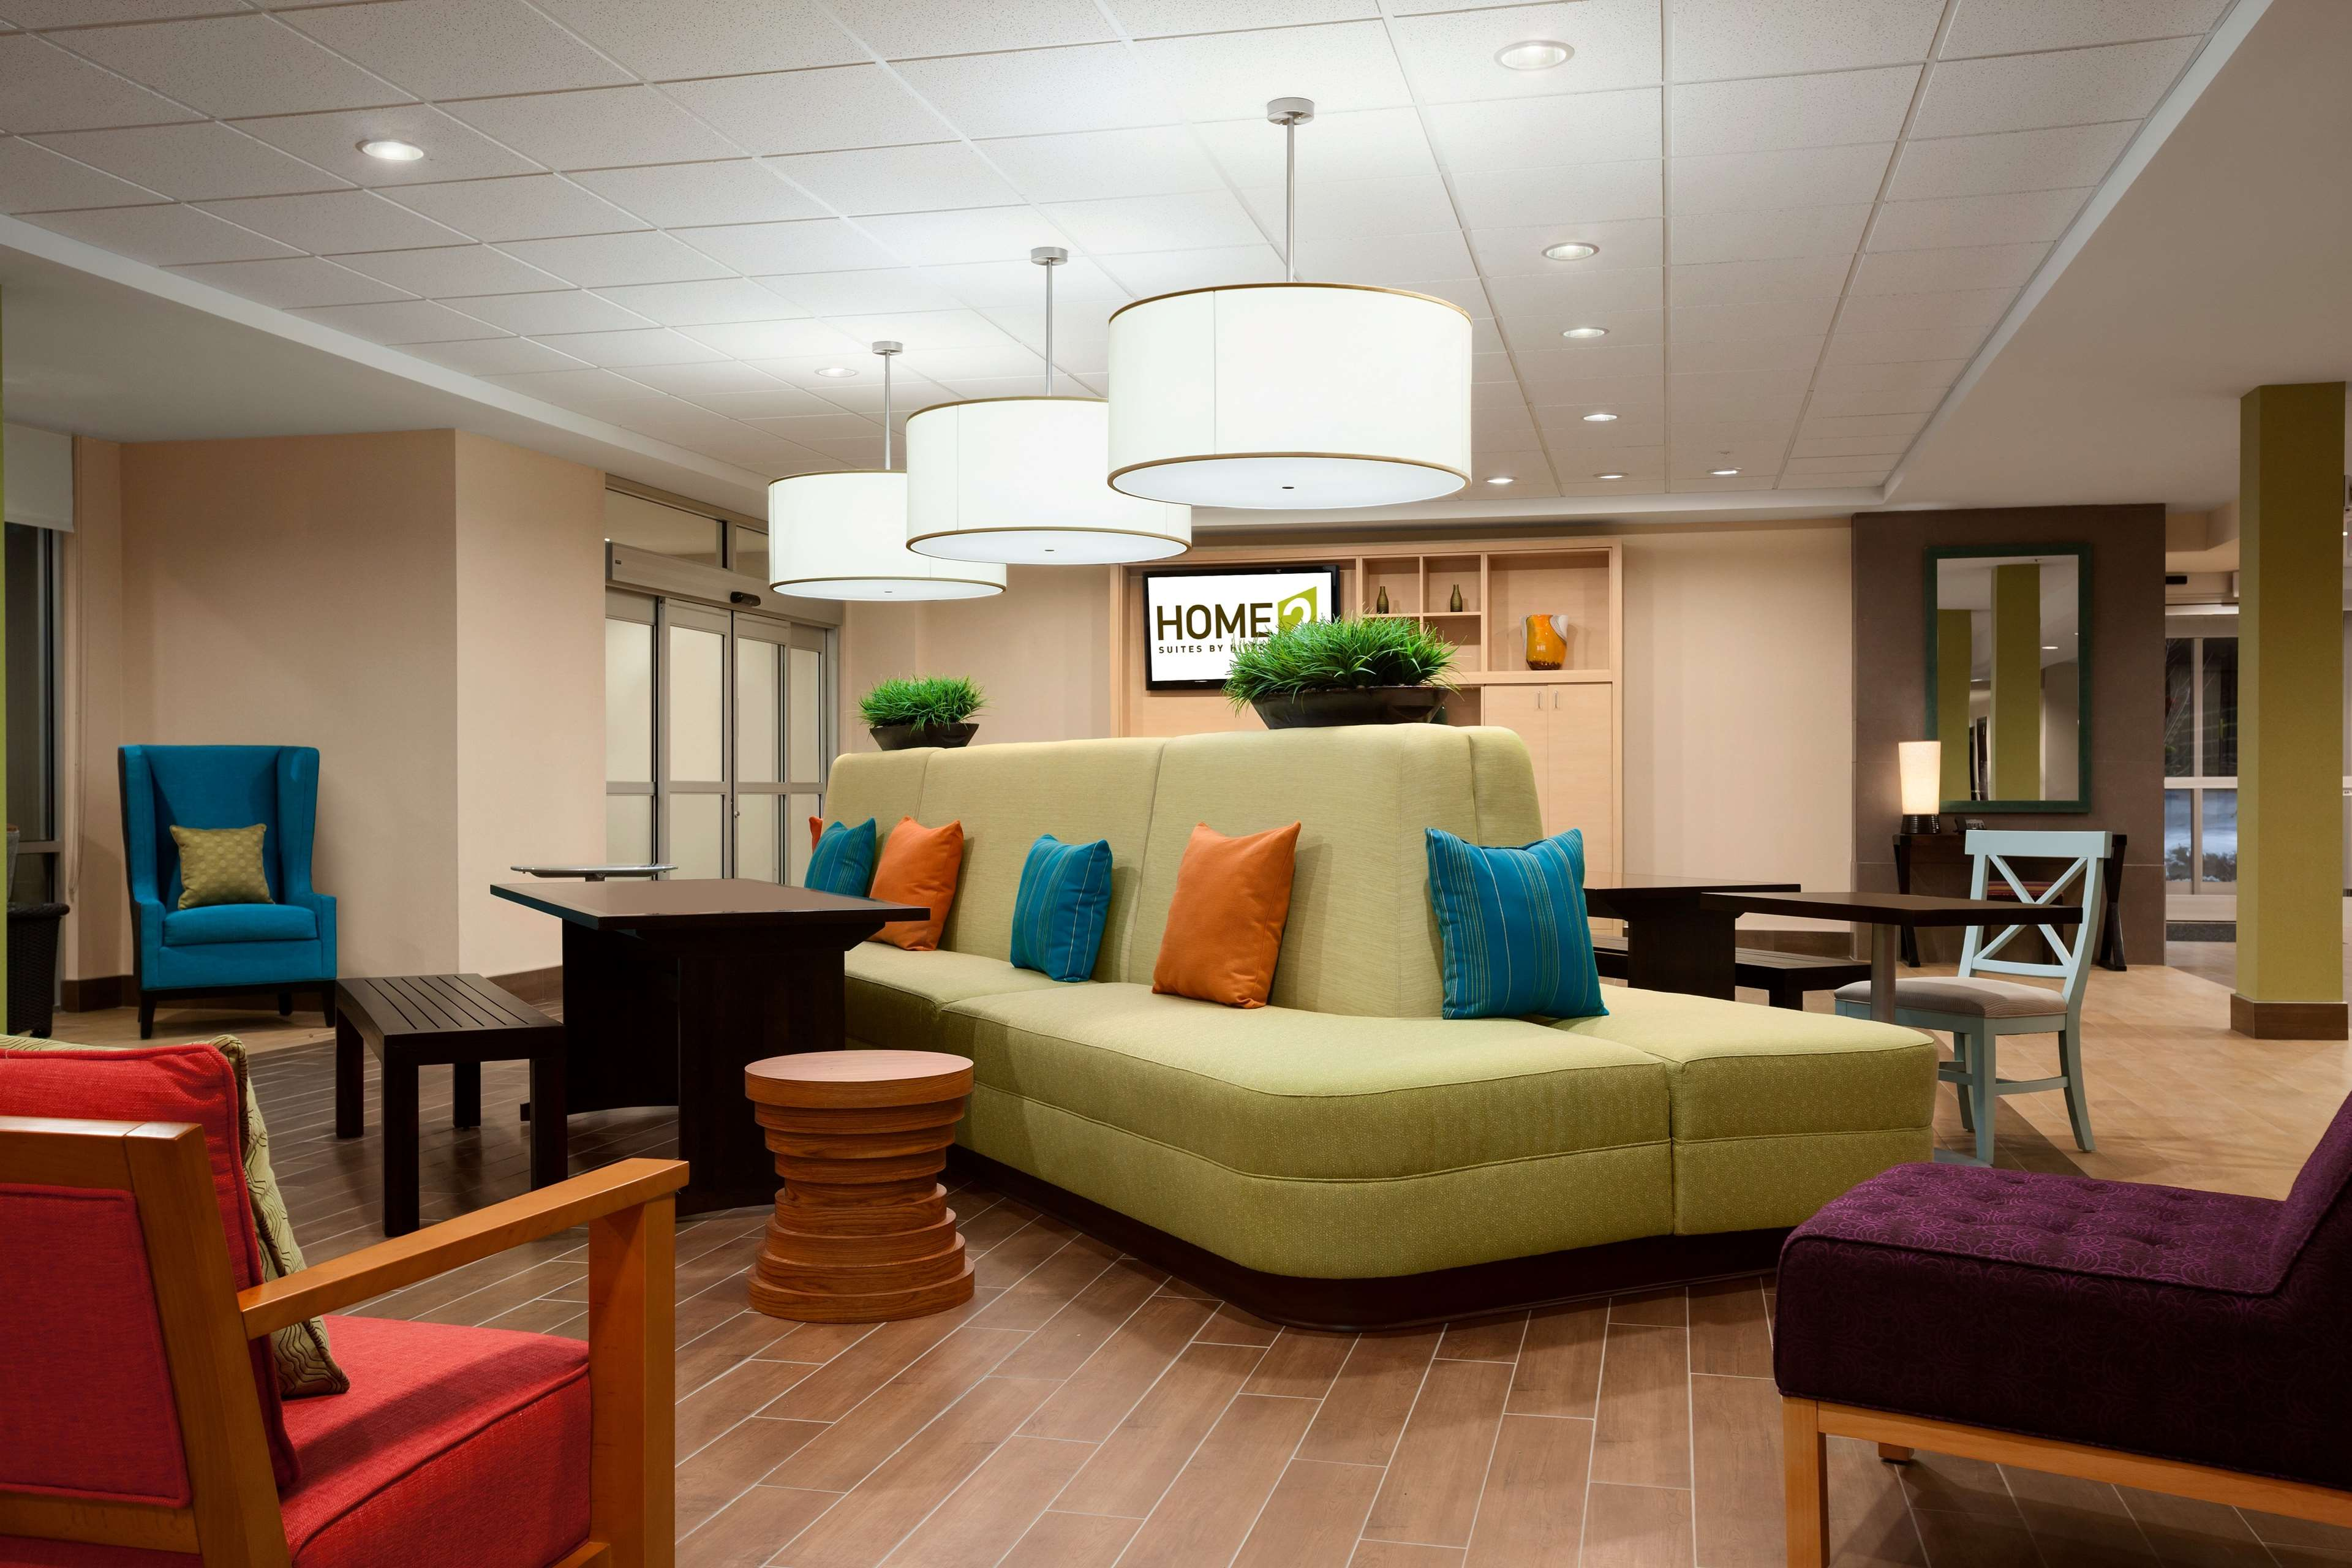 Extended Stay Hotel in NJ Rahway 07065 Home2 Suites by Hilton Rahway, NJ 667 East Milton Avenue  (732)388-5500